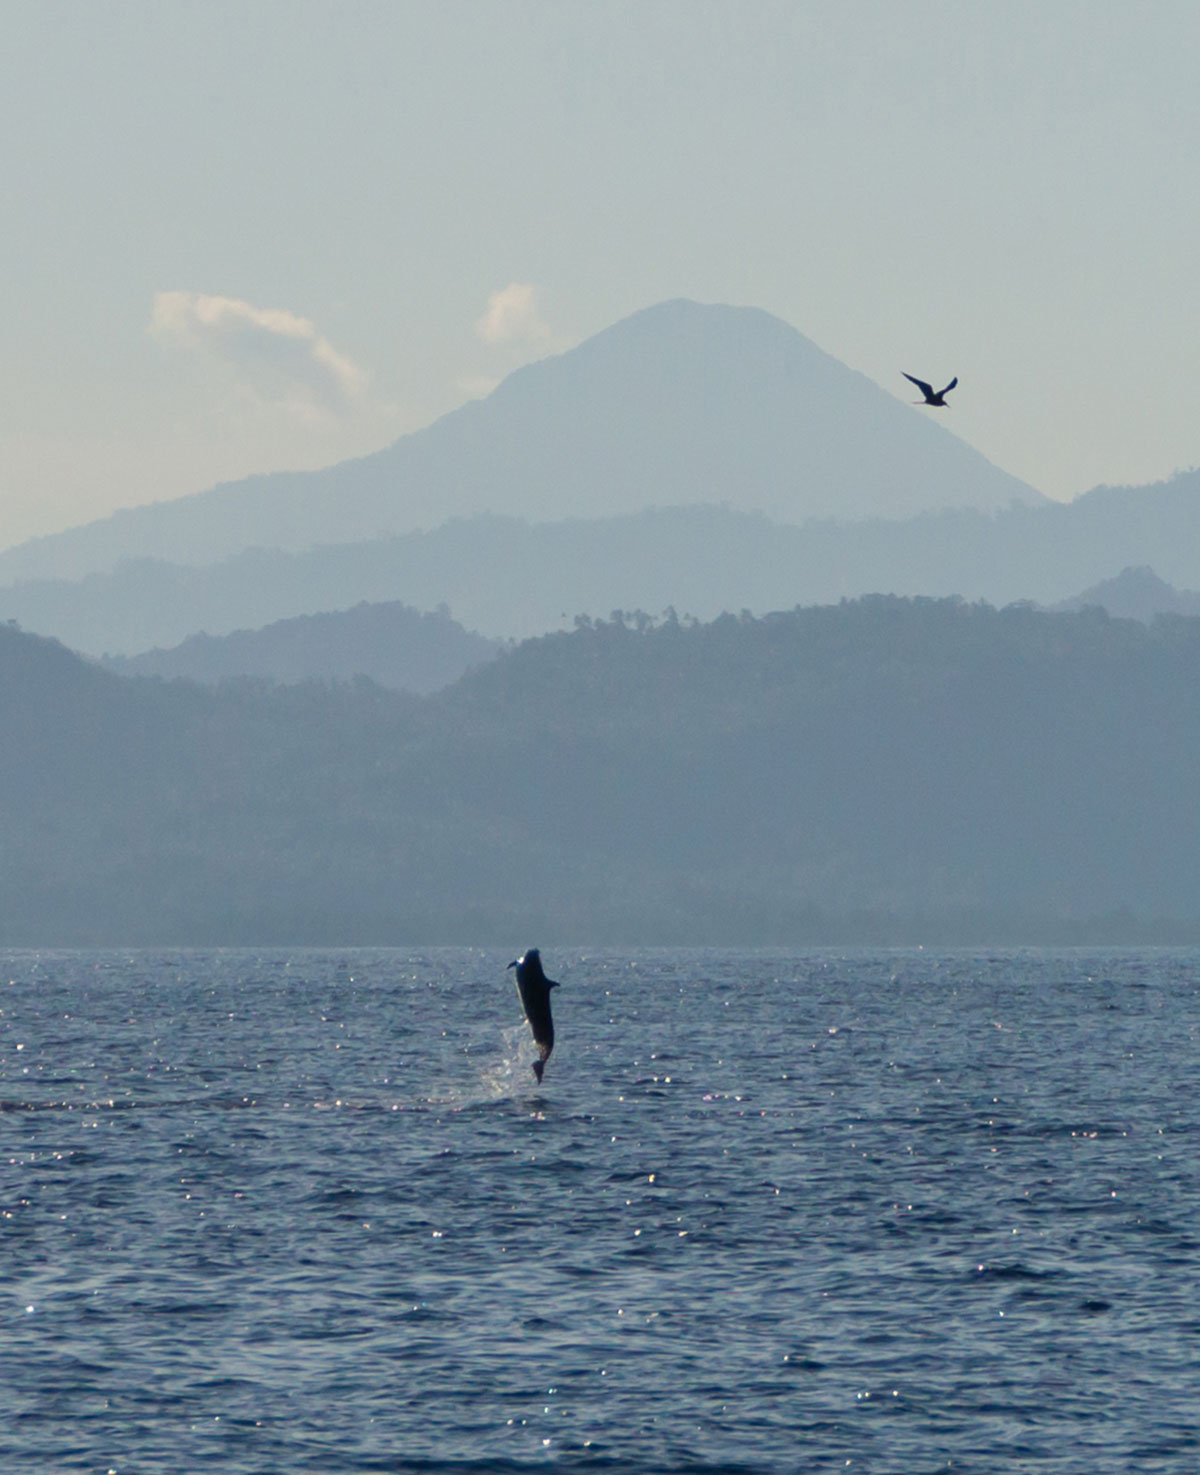 Indonesia, Manado, Bunaken Island, Dolphin watch Tour, Dolphin with Bird